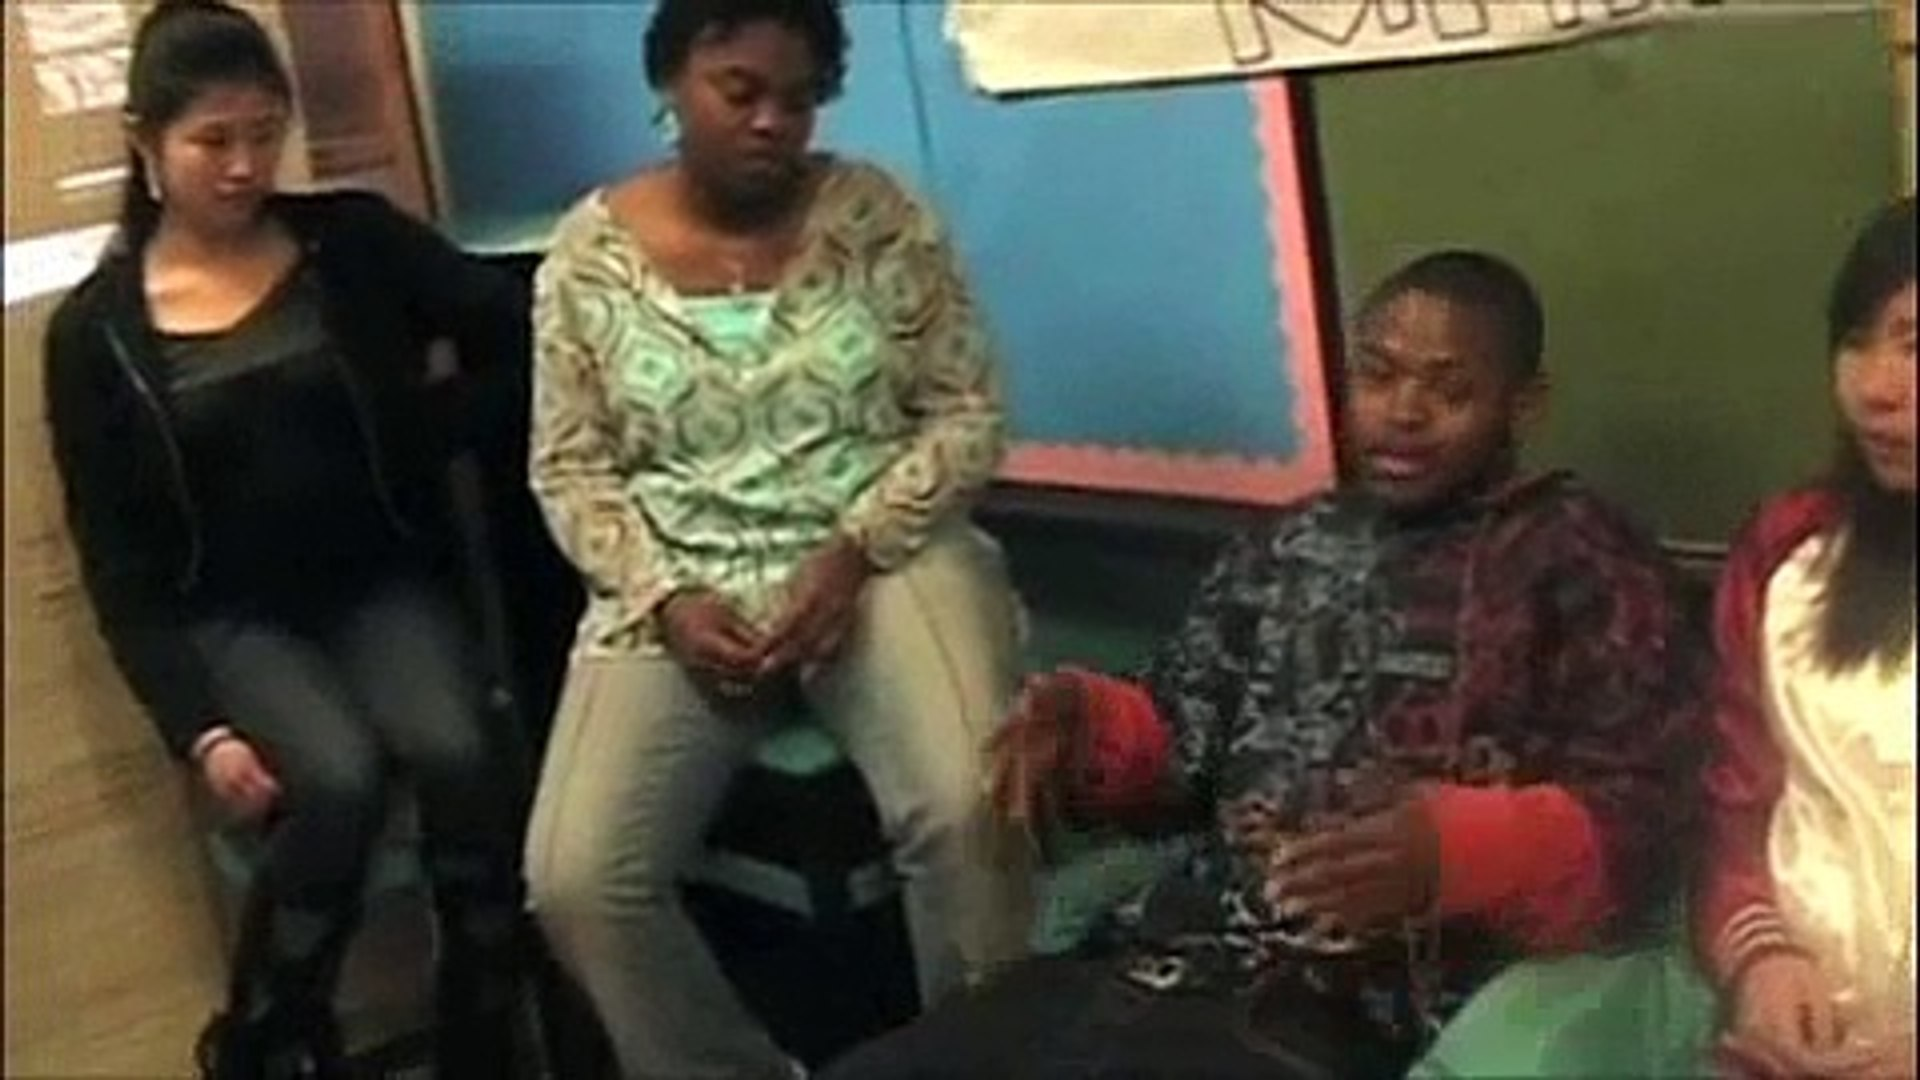 The Maury Show, THe ghetto Black Edition